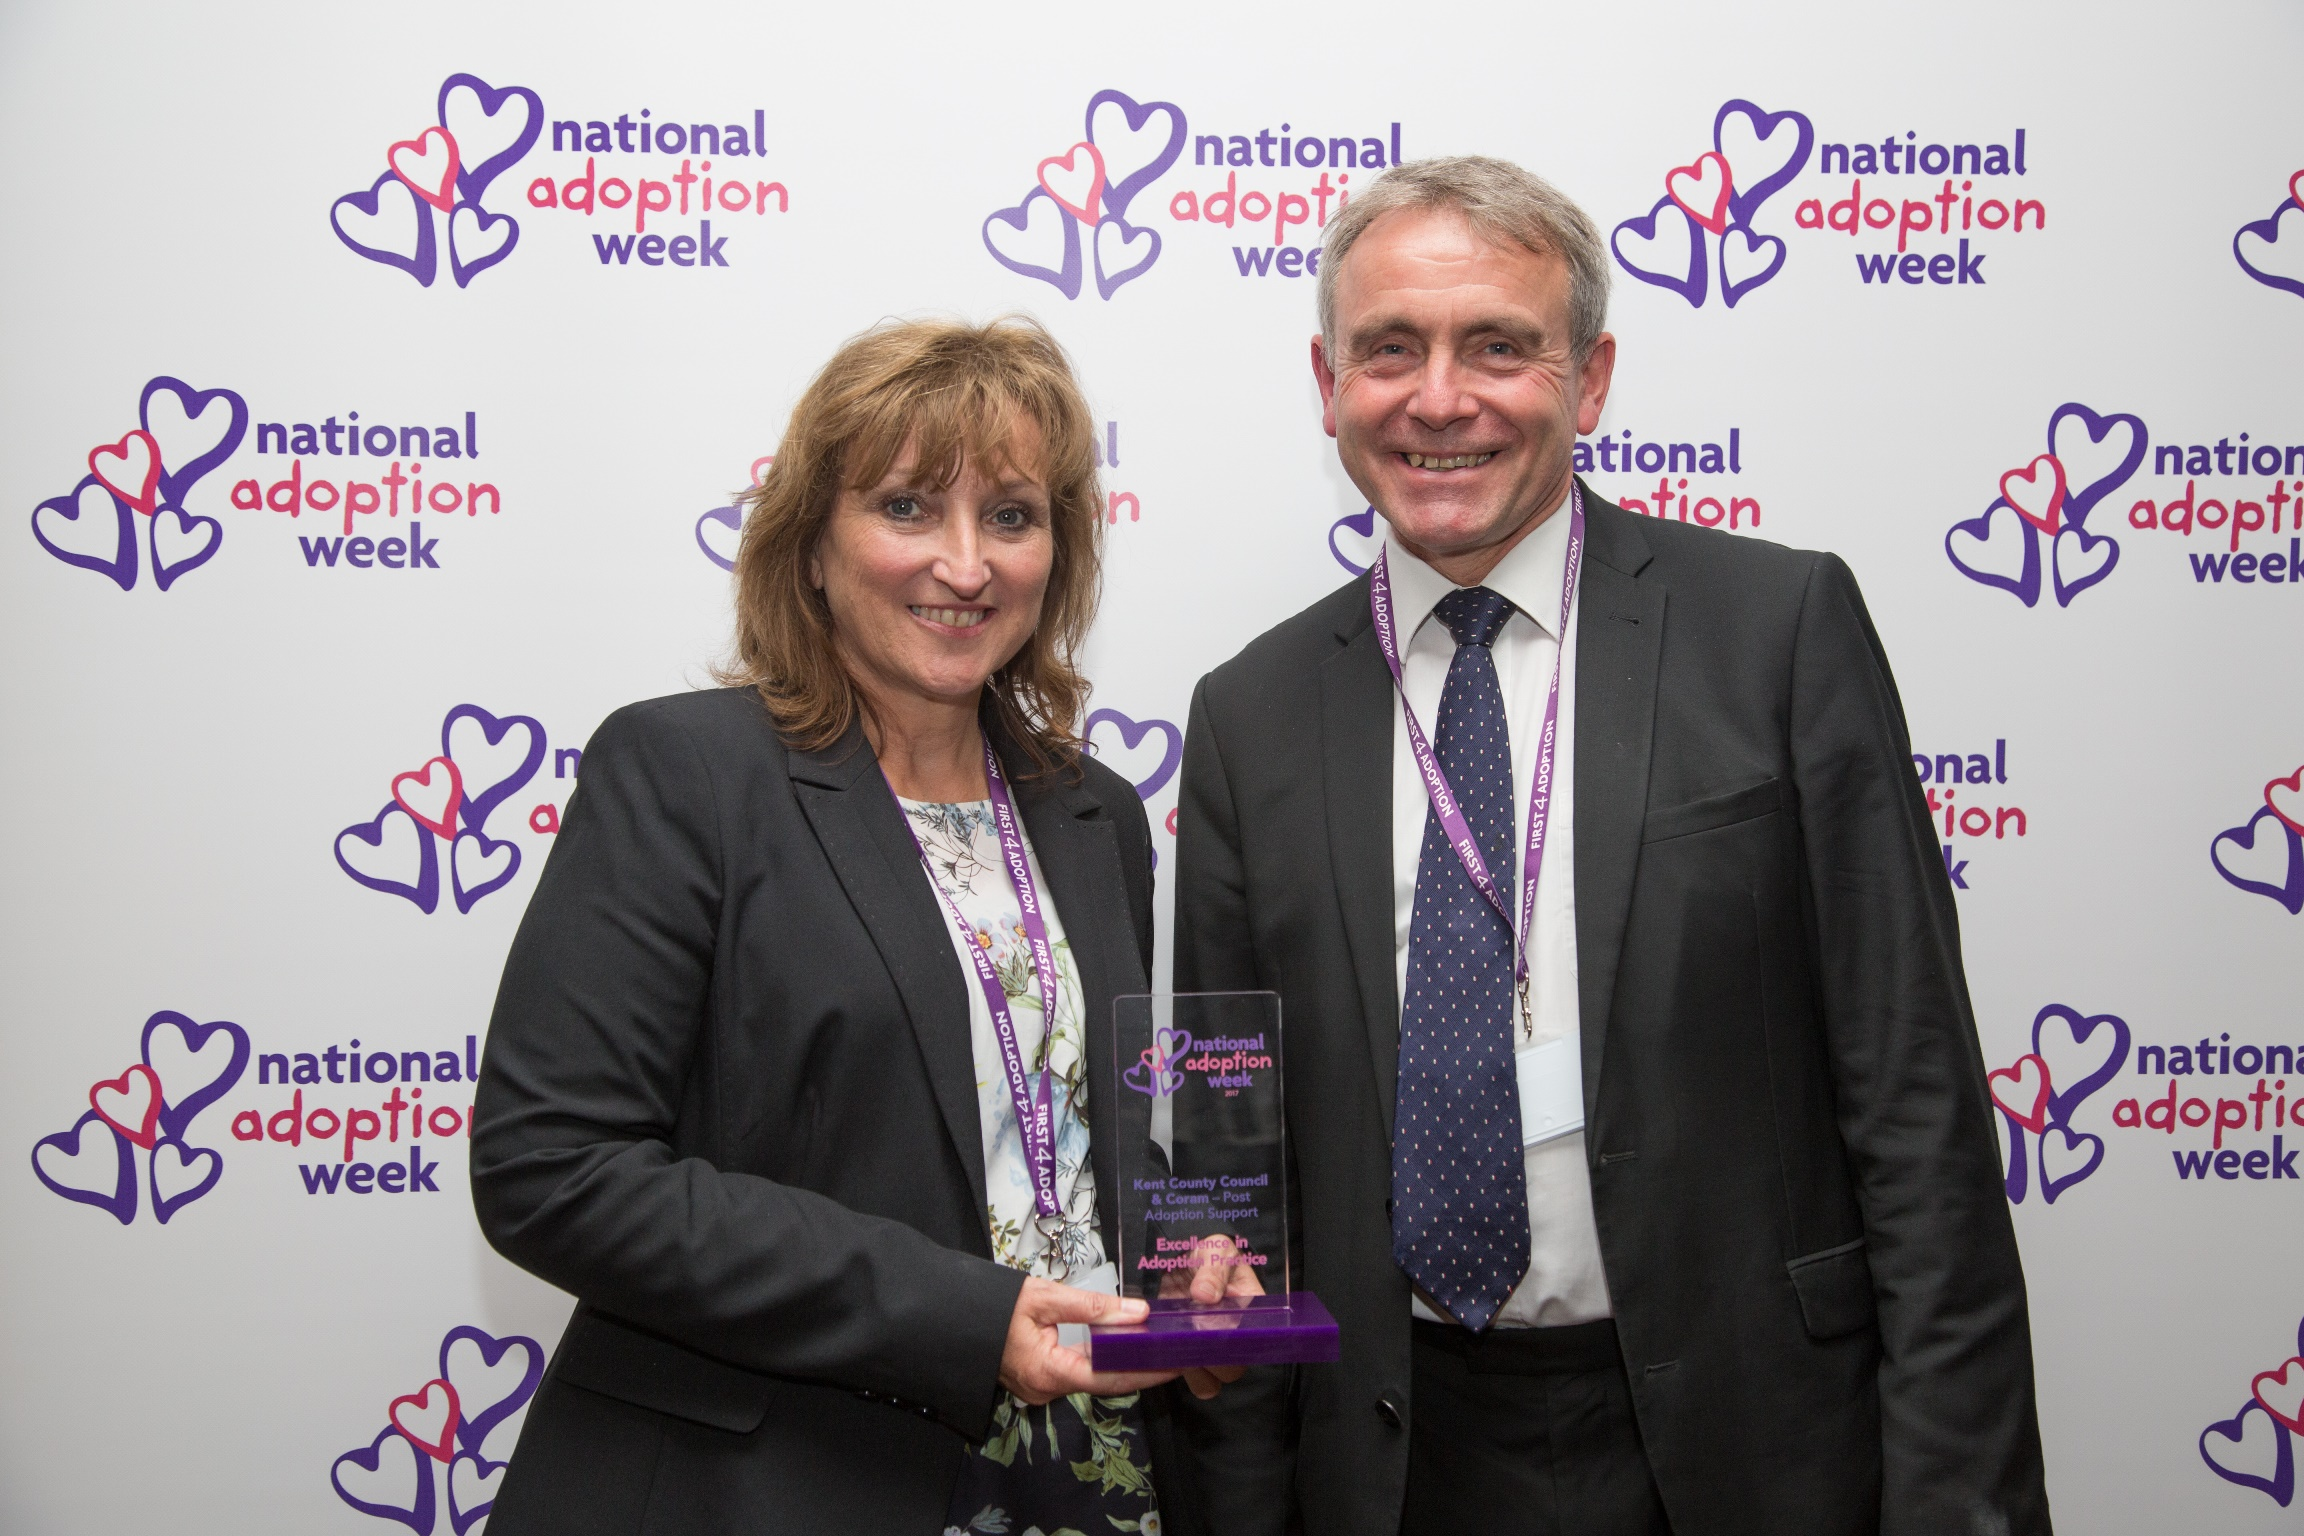 Kent council team wins prestigious award in national adoption week